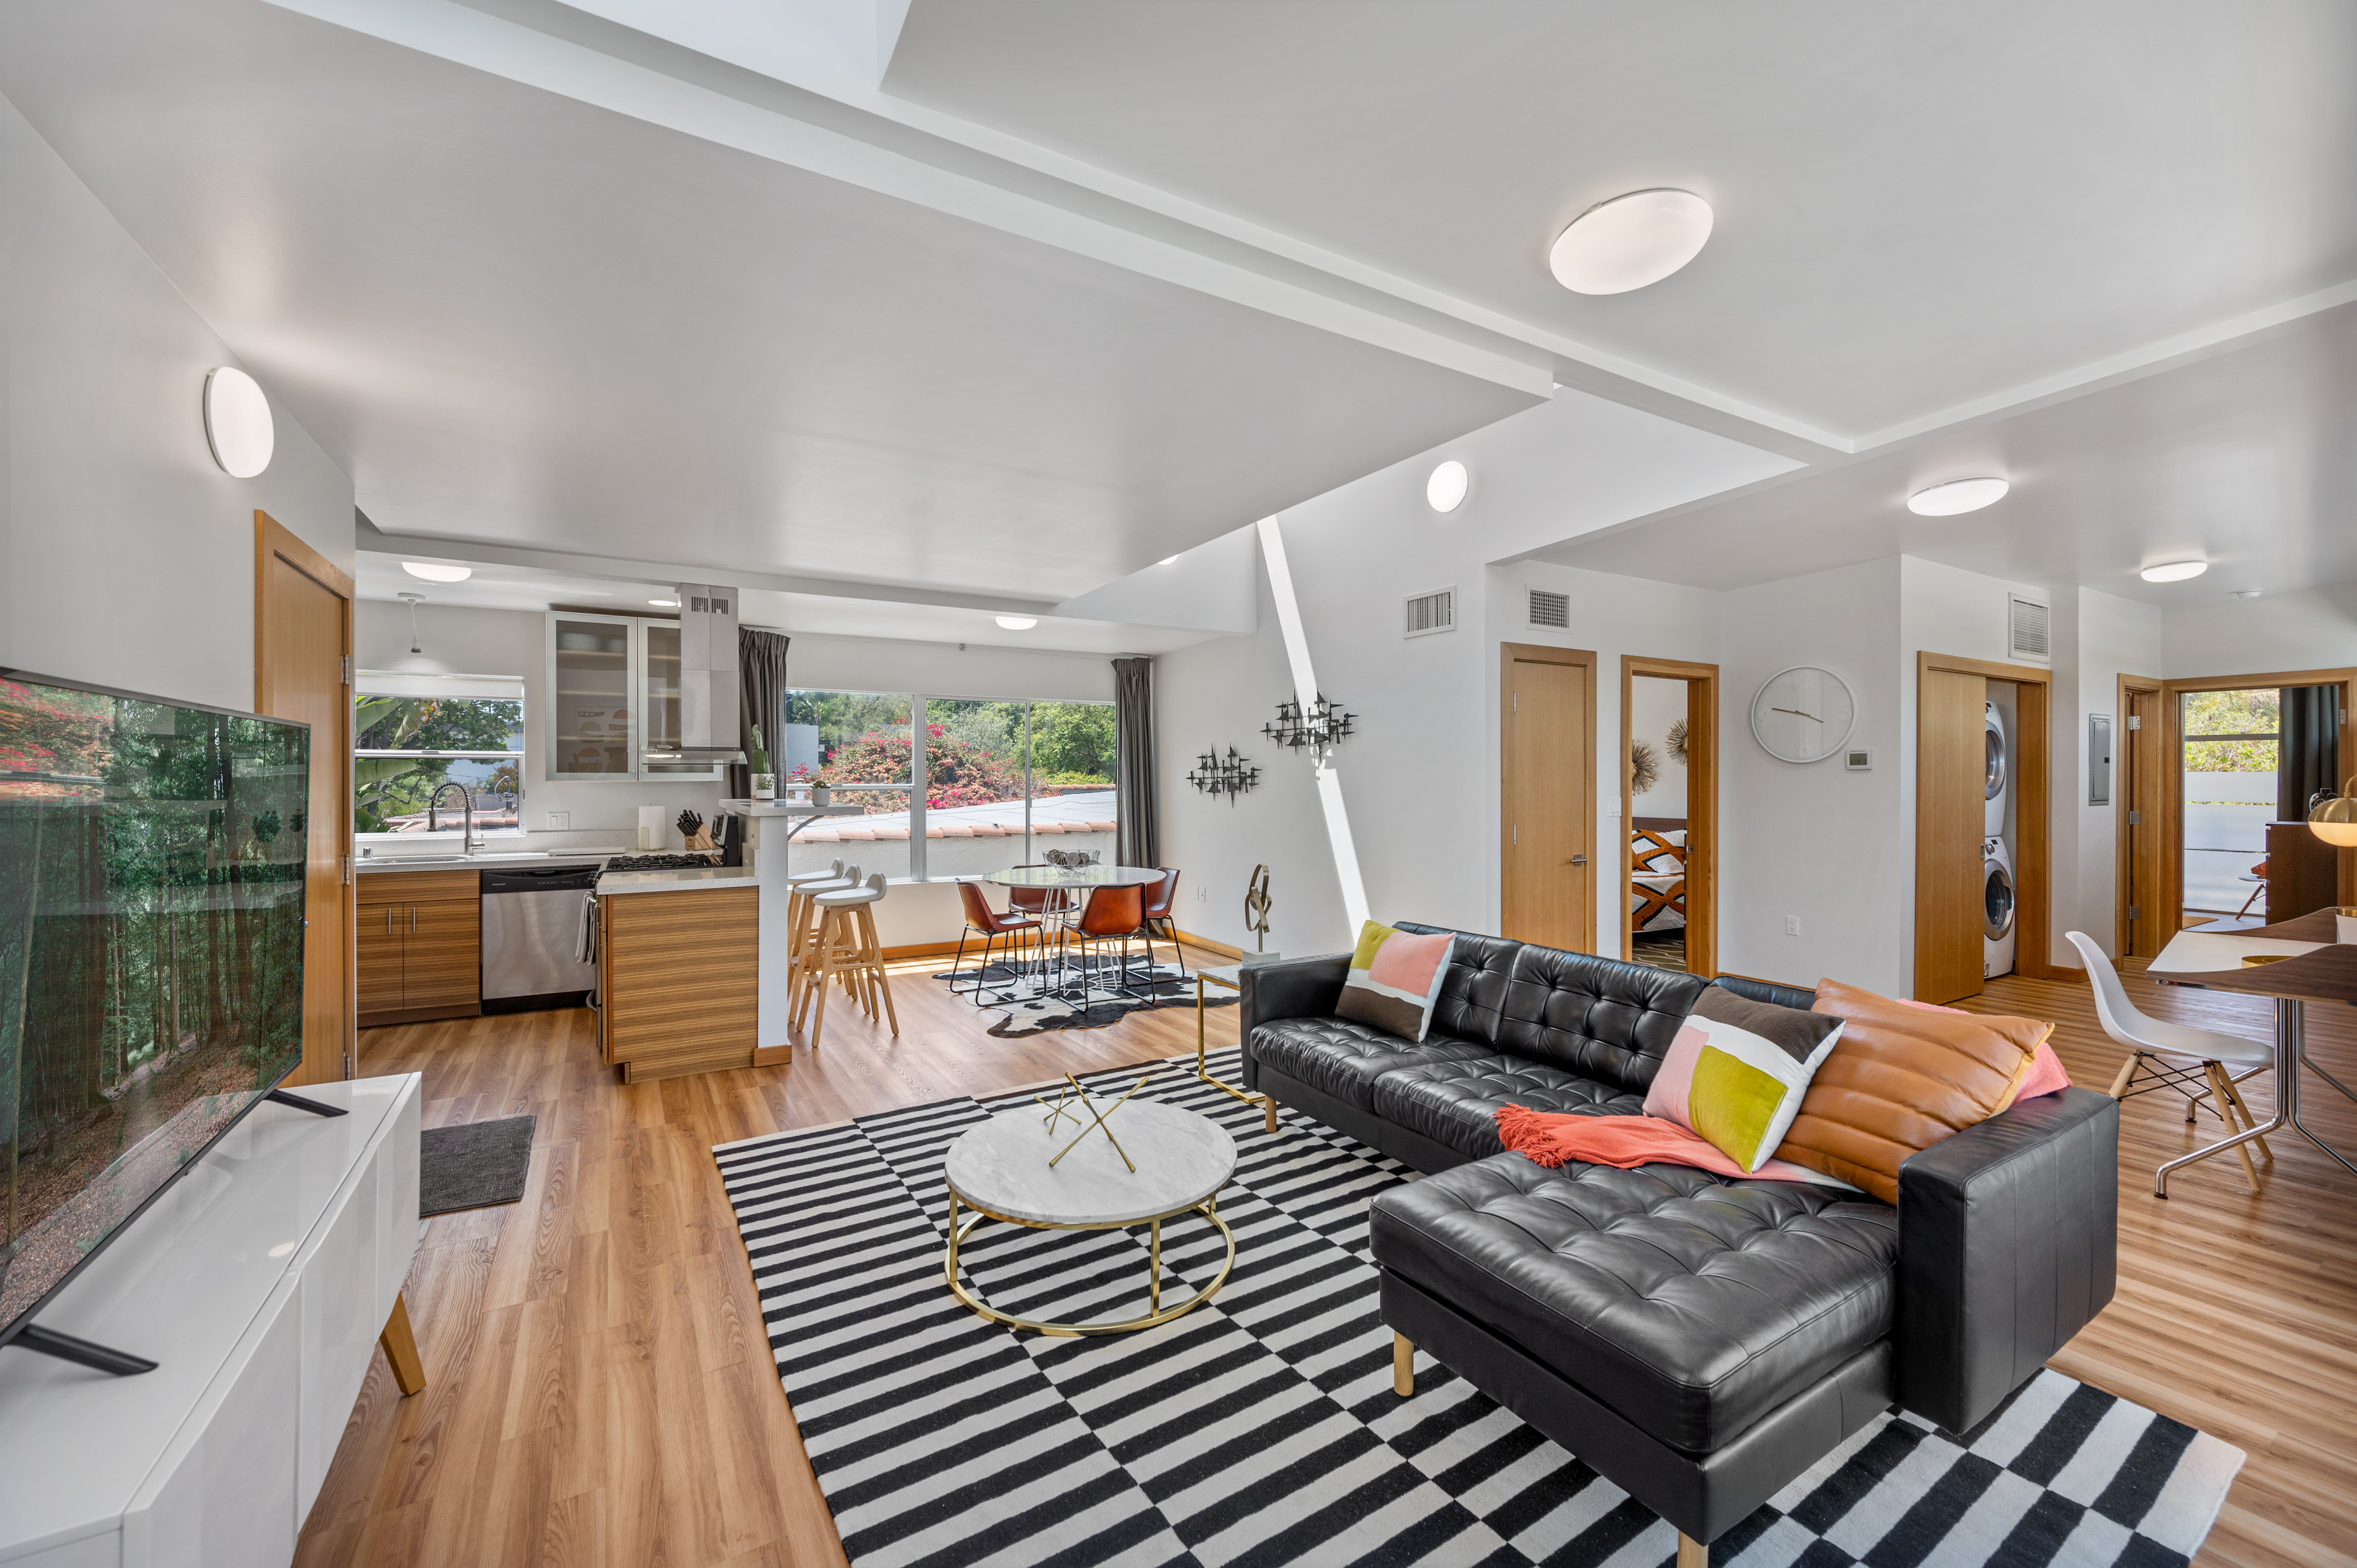 JUST LISTED   Modern Turnkey Loft in WeHo with Rooftop Views   New TIC Community